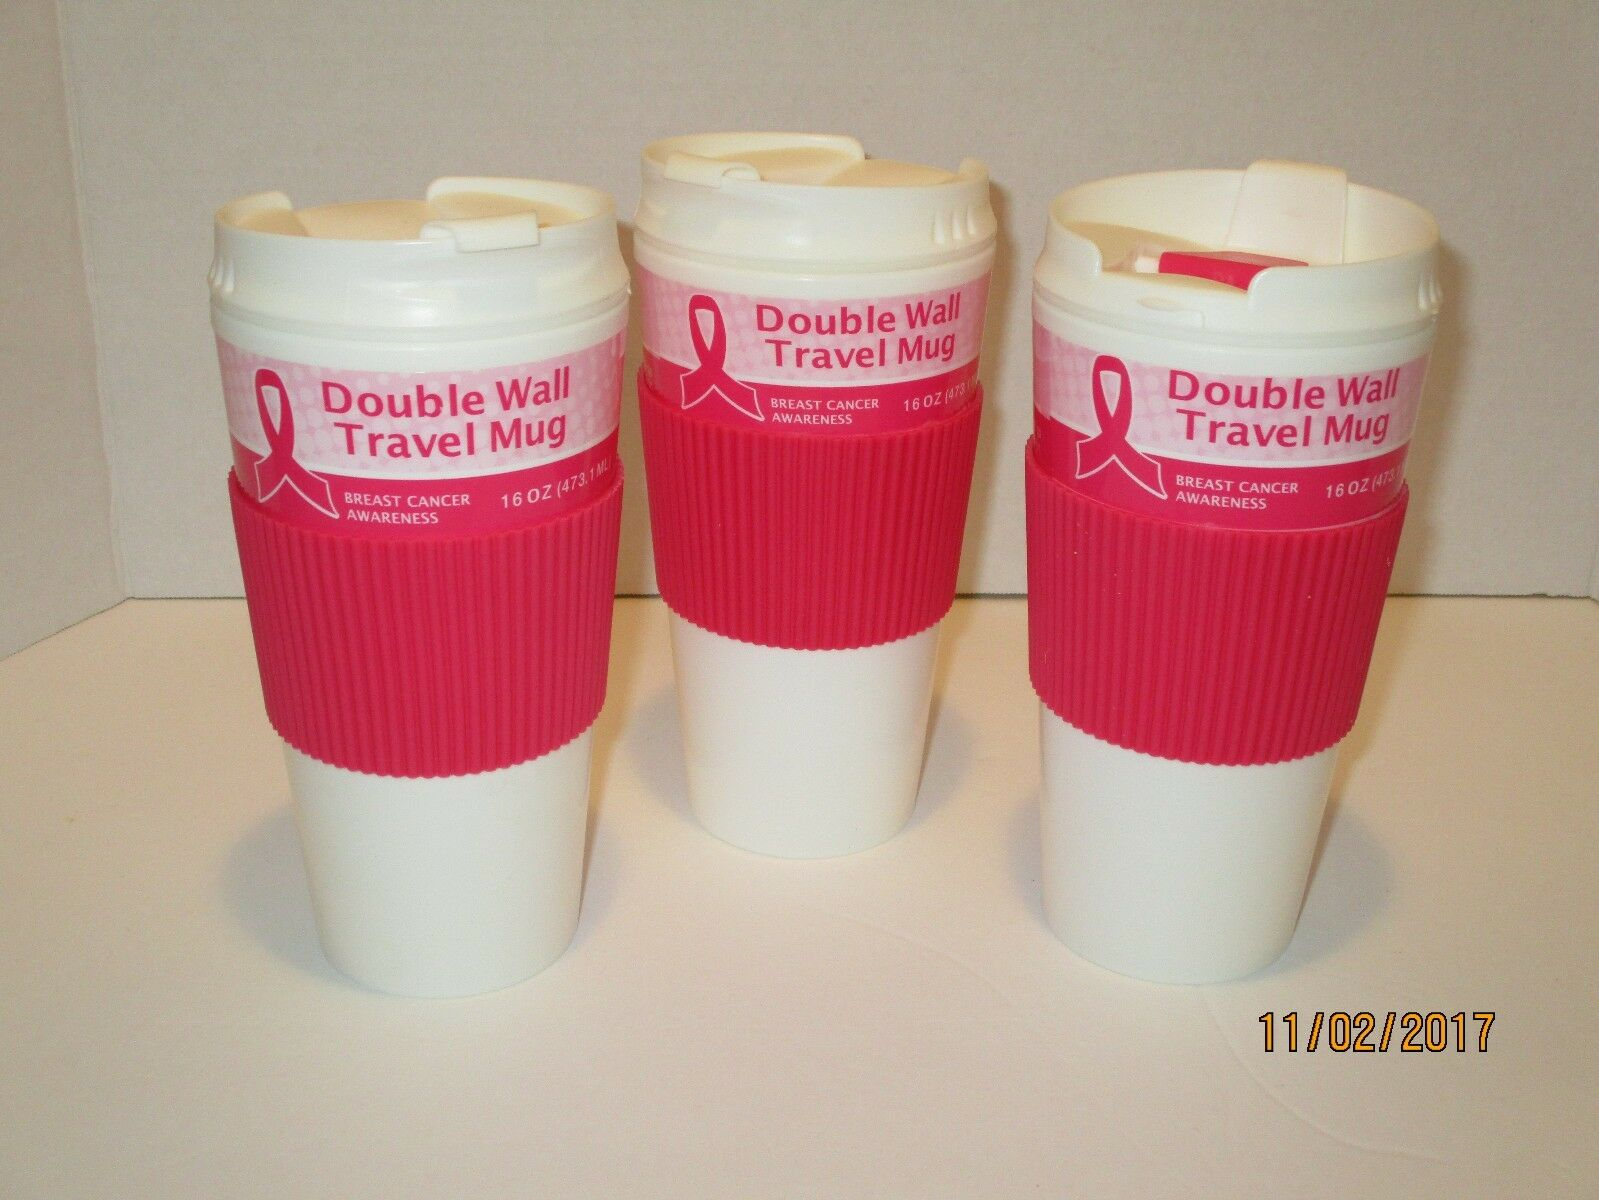 Double Wall Travel Mug 16oz - Breast Cancer Awareness, Home